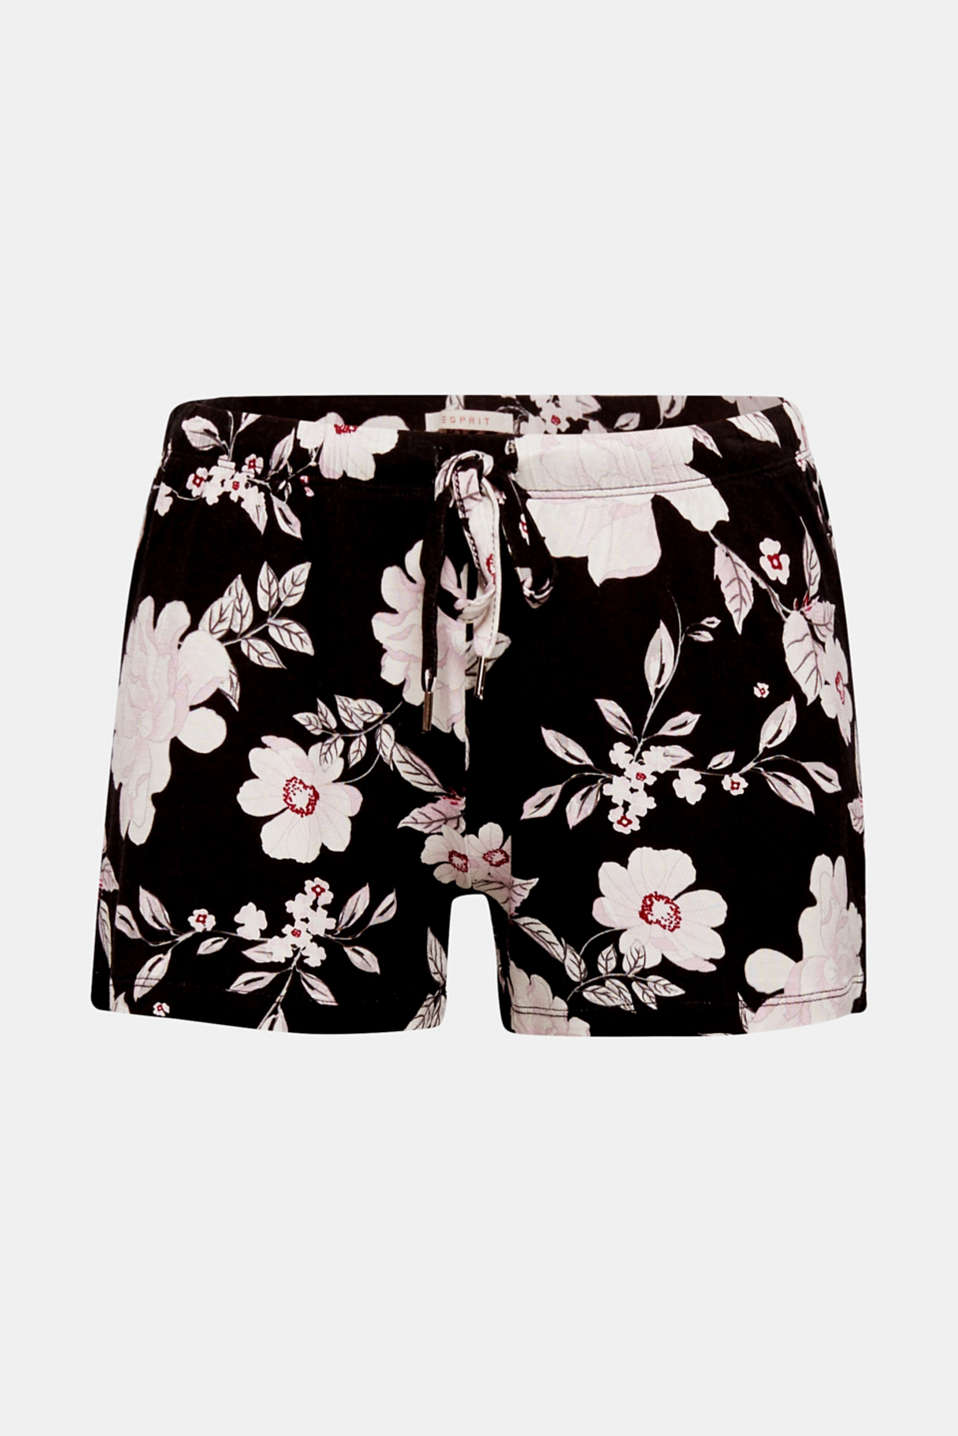 Your new fave for chilling out in! Dreams, relaxing and an all-round feeling of well-being beckon when you slip into these snug, comfy and stretchy trousers with a romantic floral print.